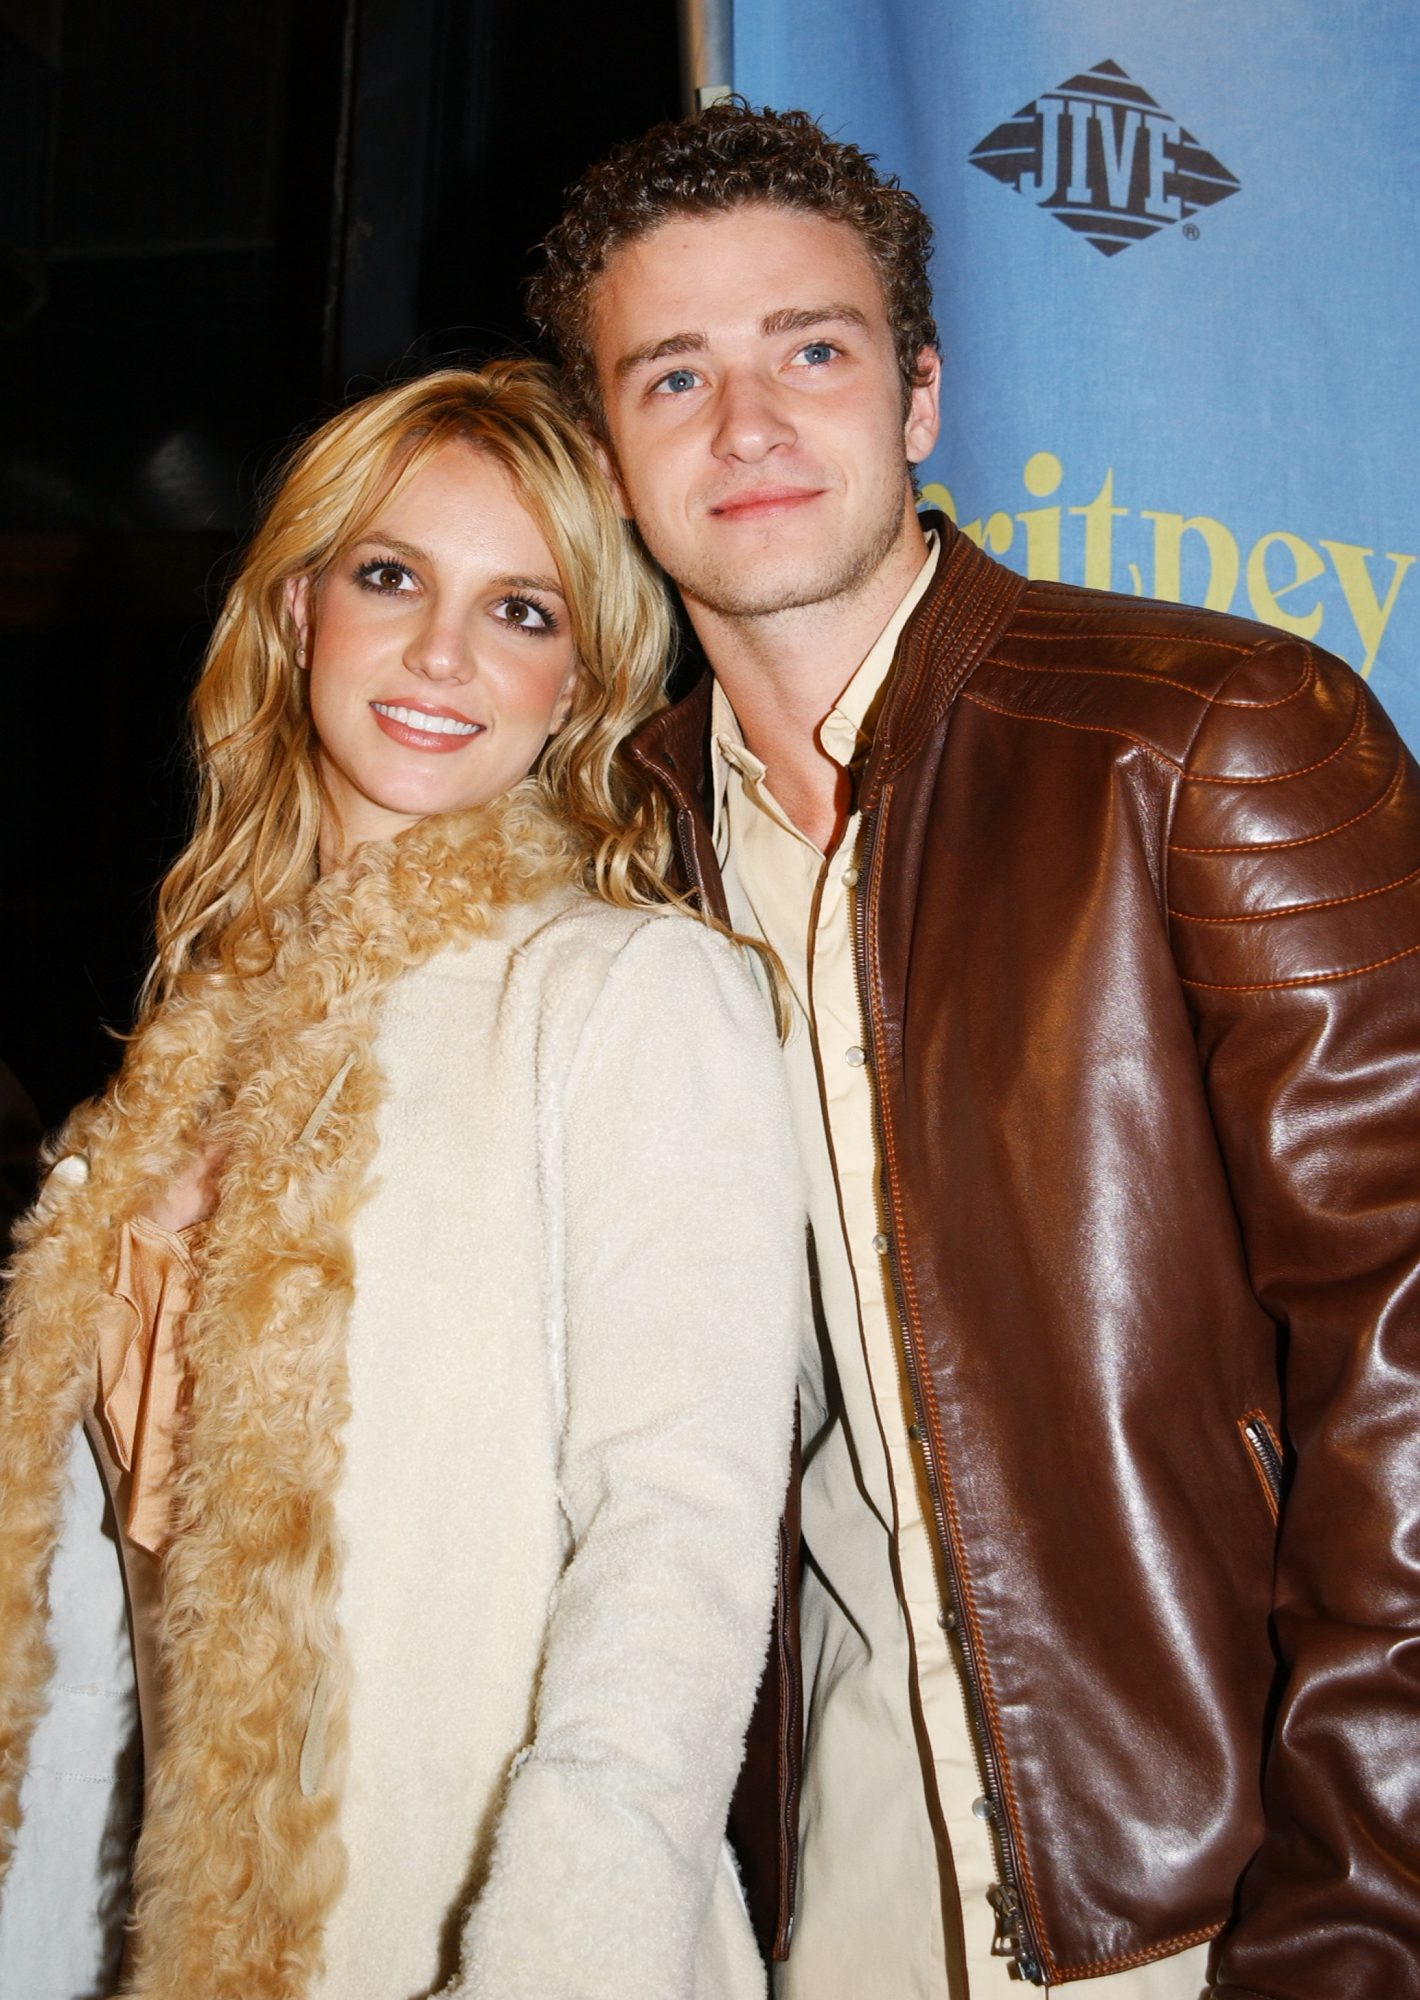 Britney Spears and Justin Timberlake,